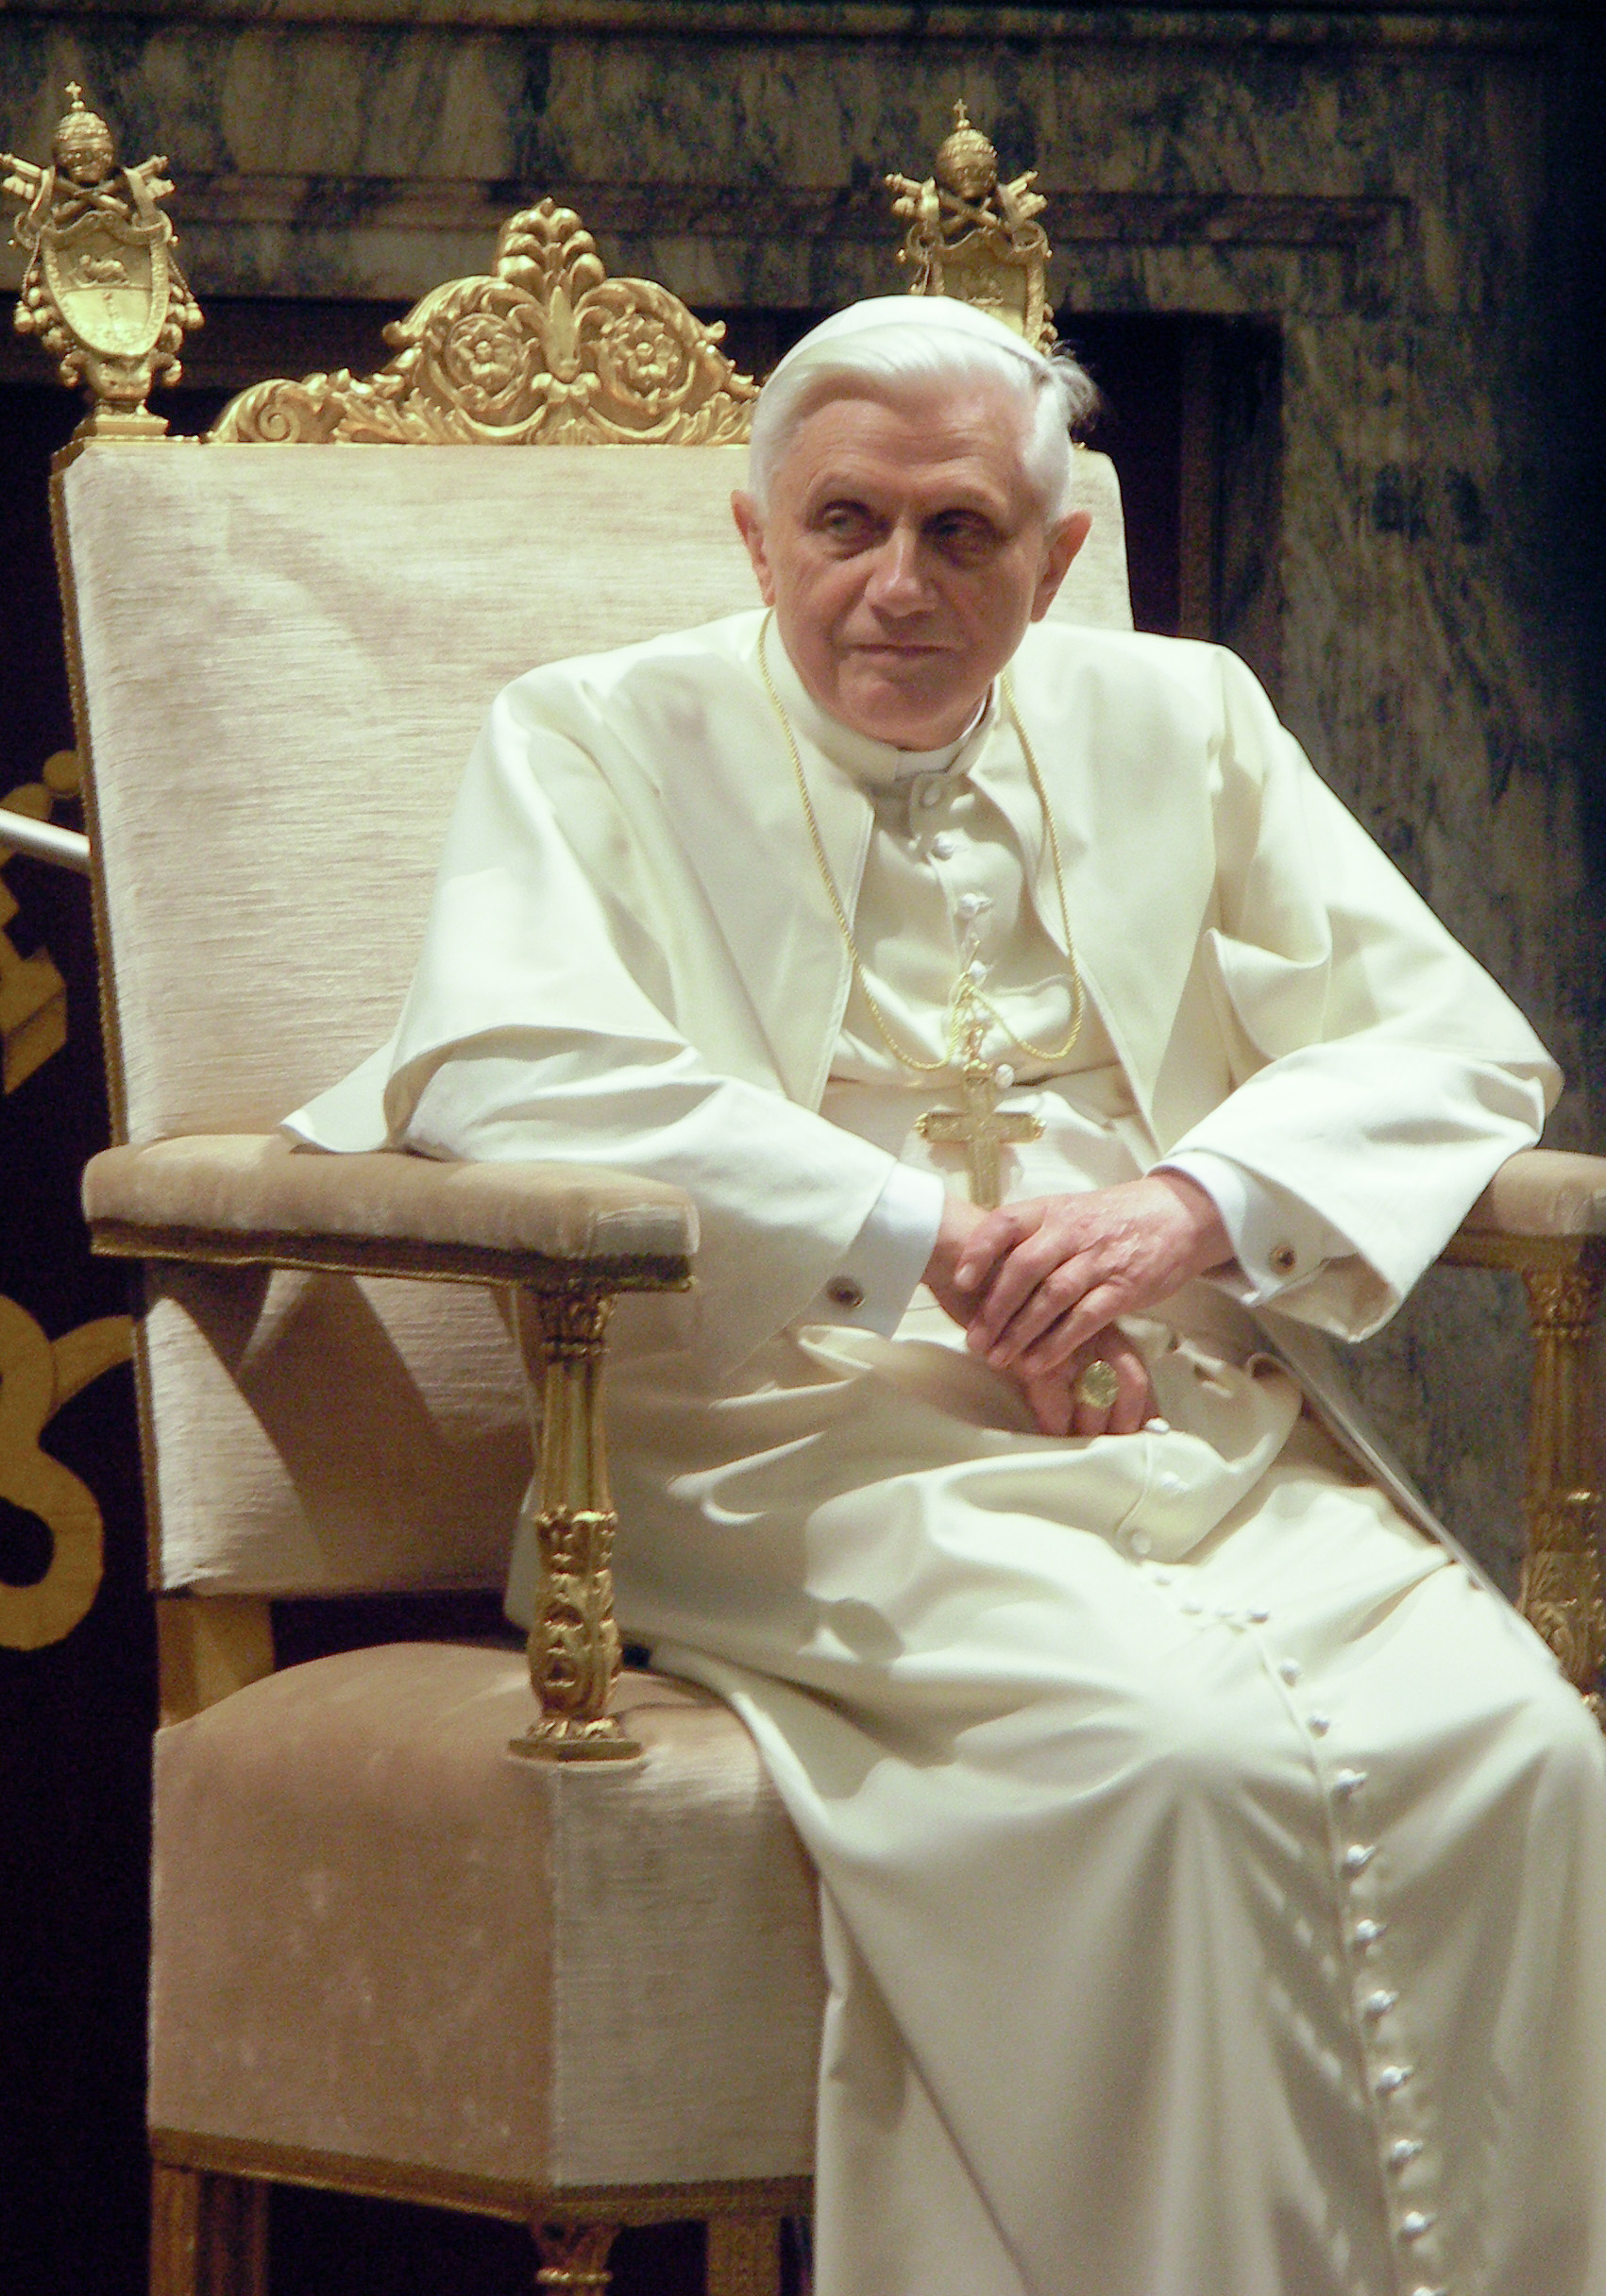 http://upload.wikimedia.org/wikipedia/commons/1/11/Pope_Benedictus_XVI_january%2C20_2006_%282%29_mod.jpg